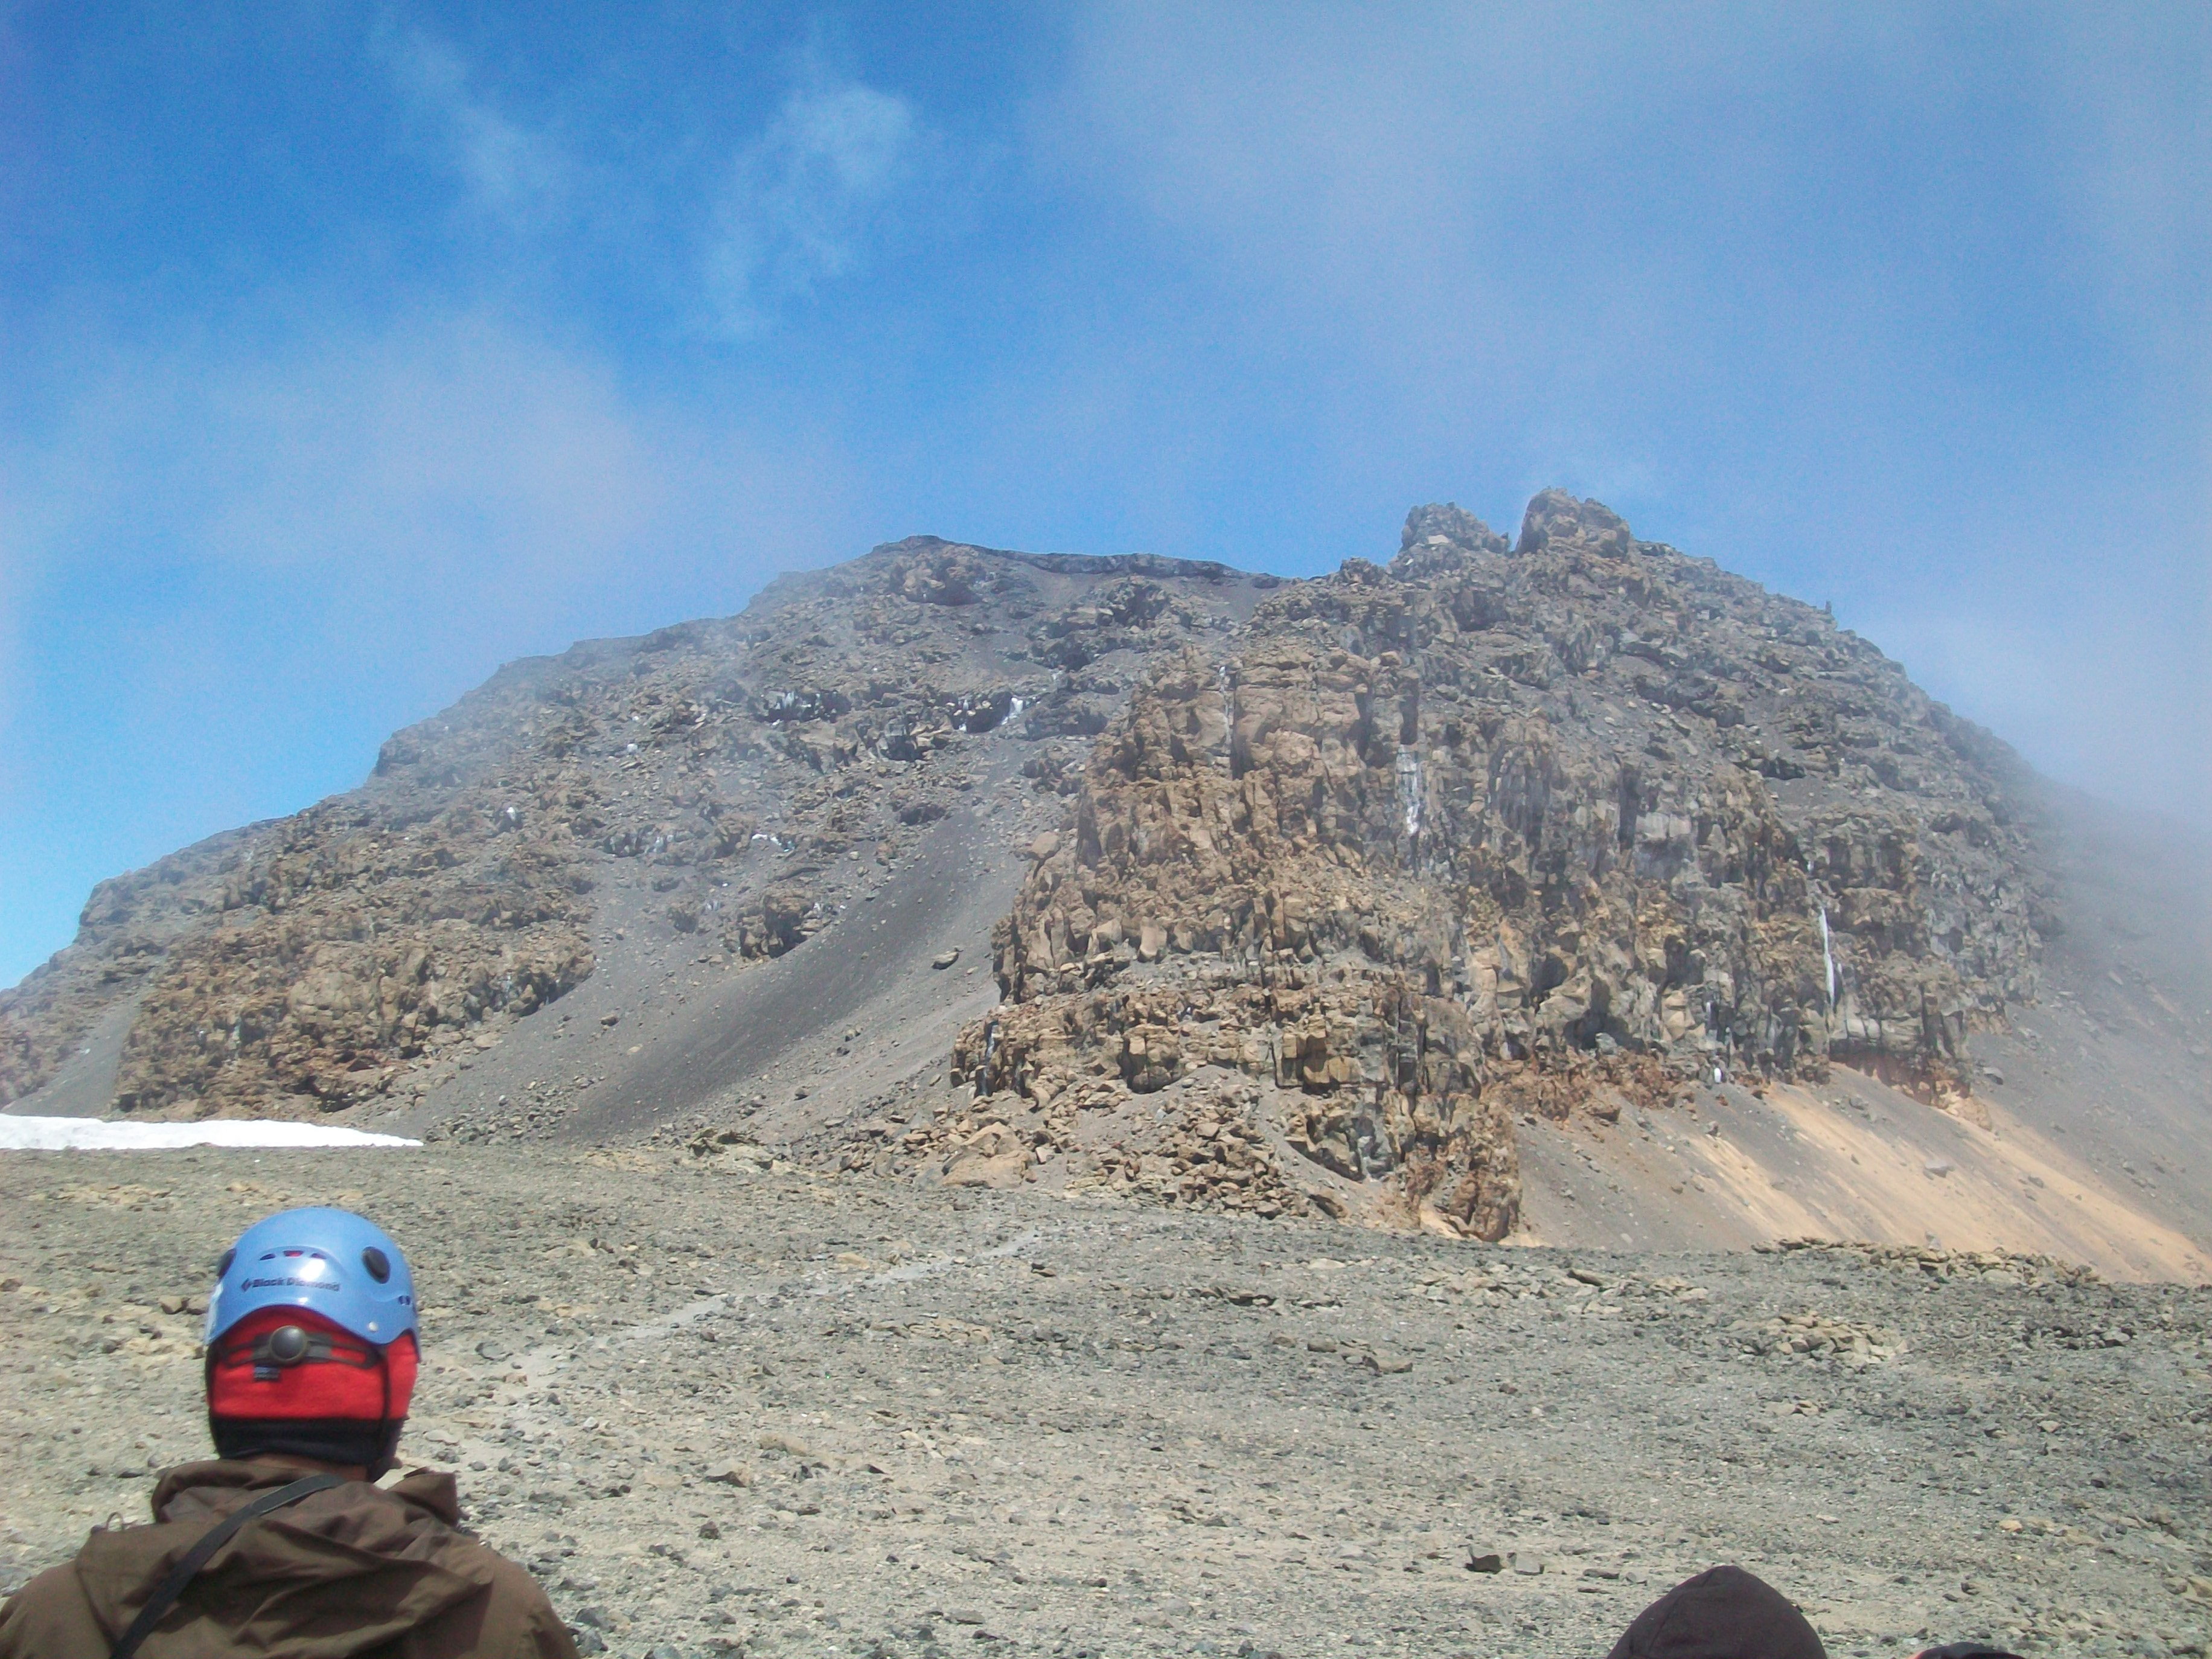 Day 6 Western Breach To Crater Camp kili020 tomorrows climb